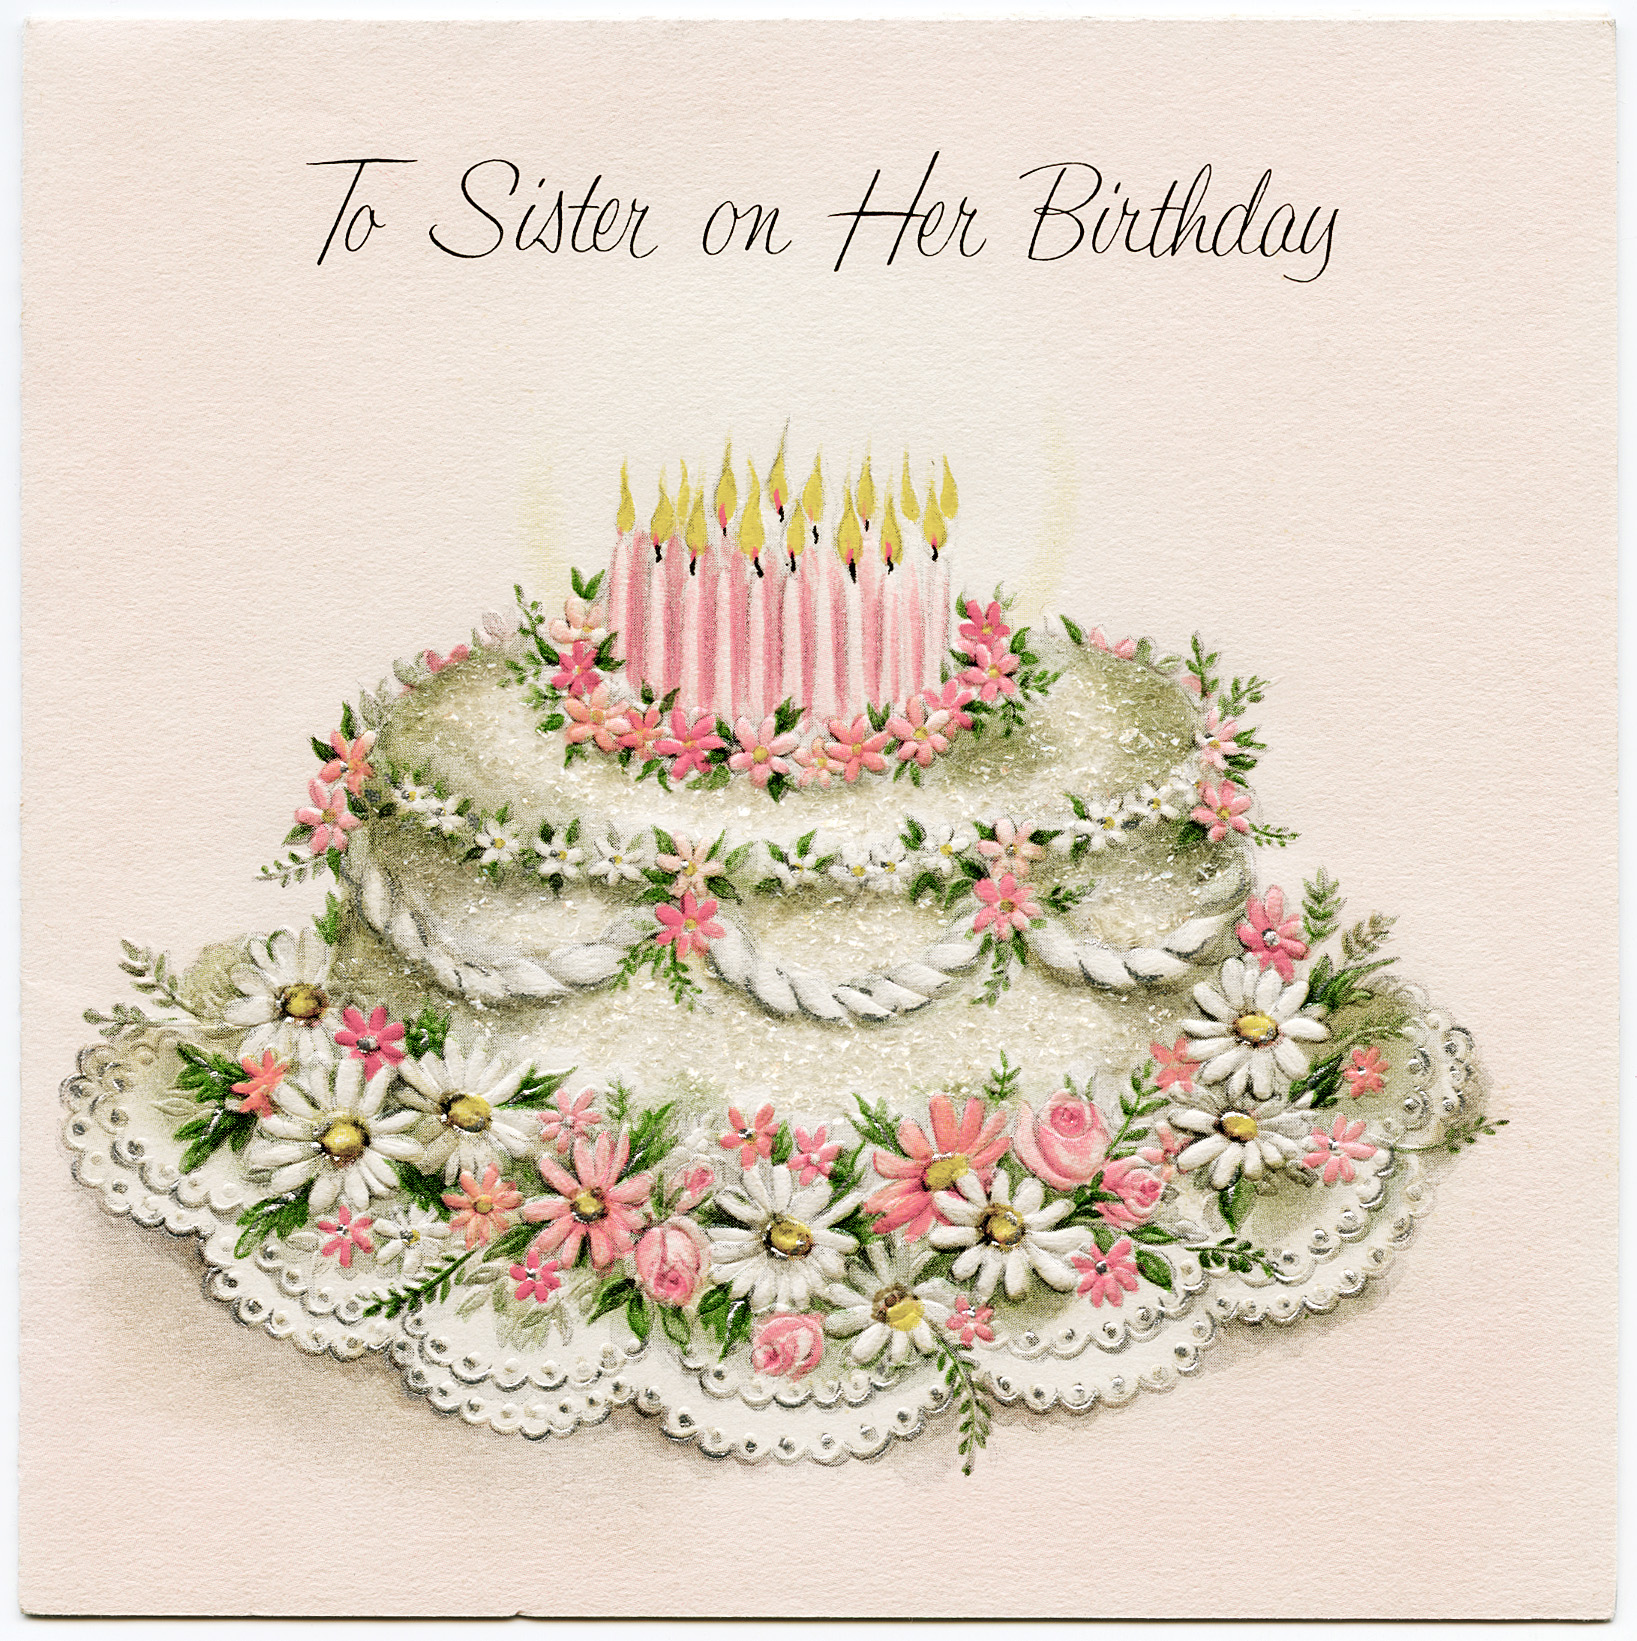 Vintage sister birthday greeting card old design shop blog click m4hsunfo